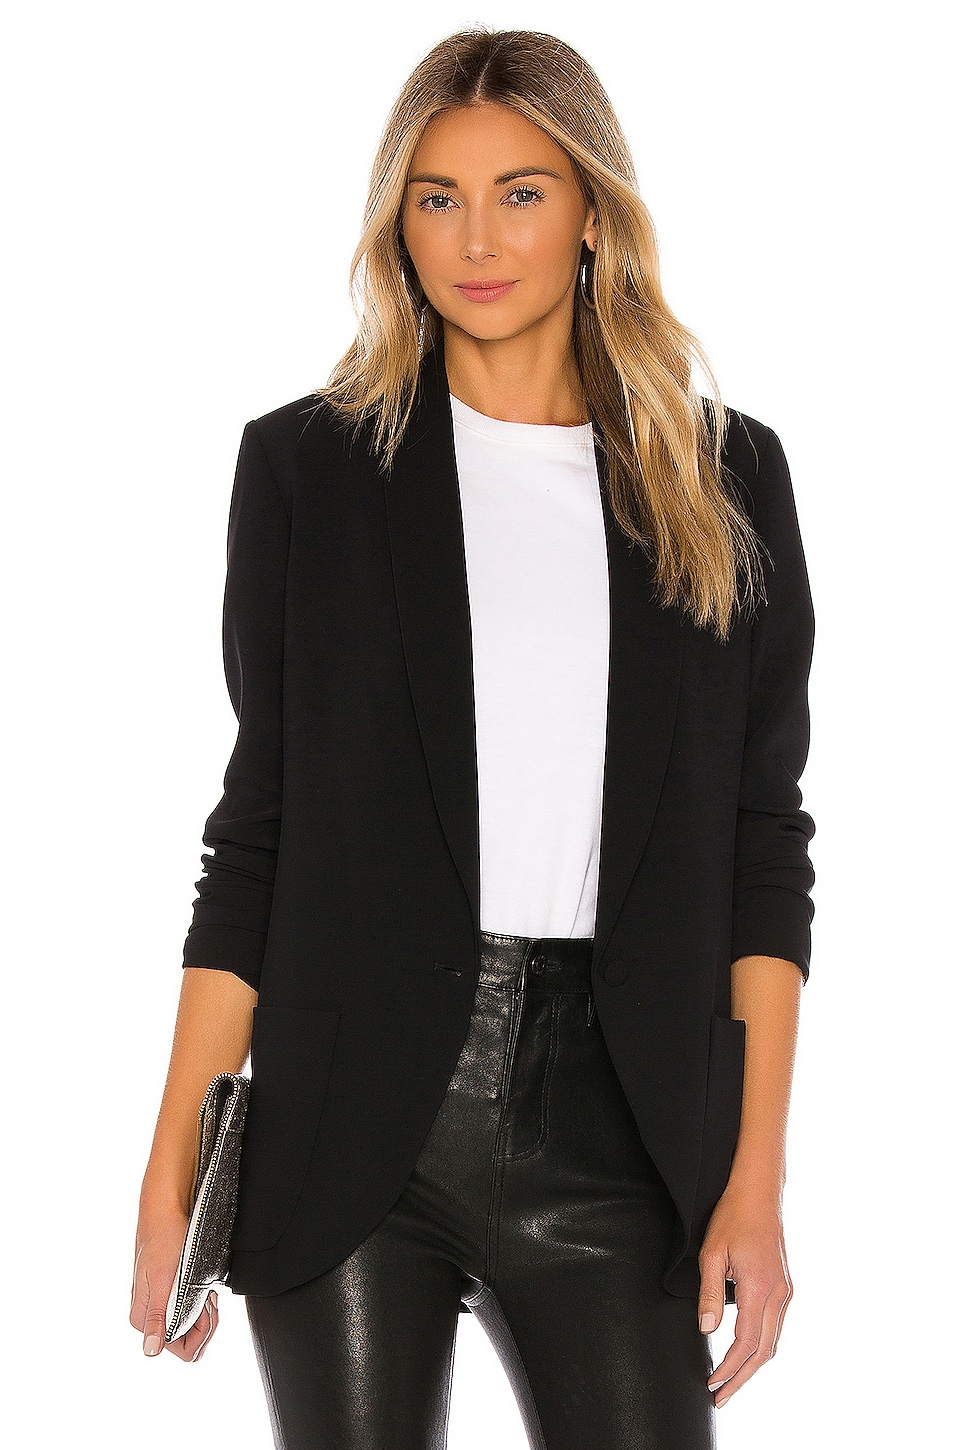 Shawl Collar Blazer                     Amanda Uprichard 9